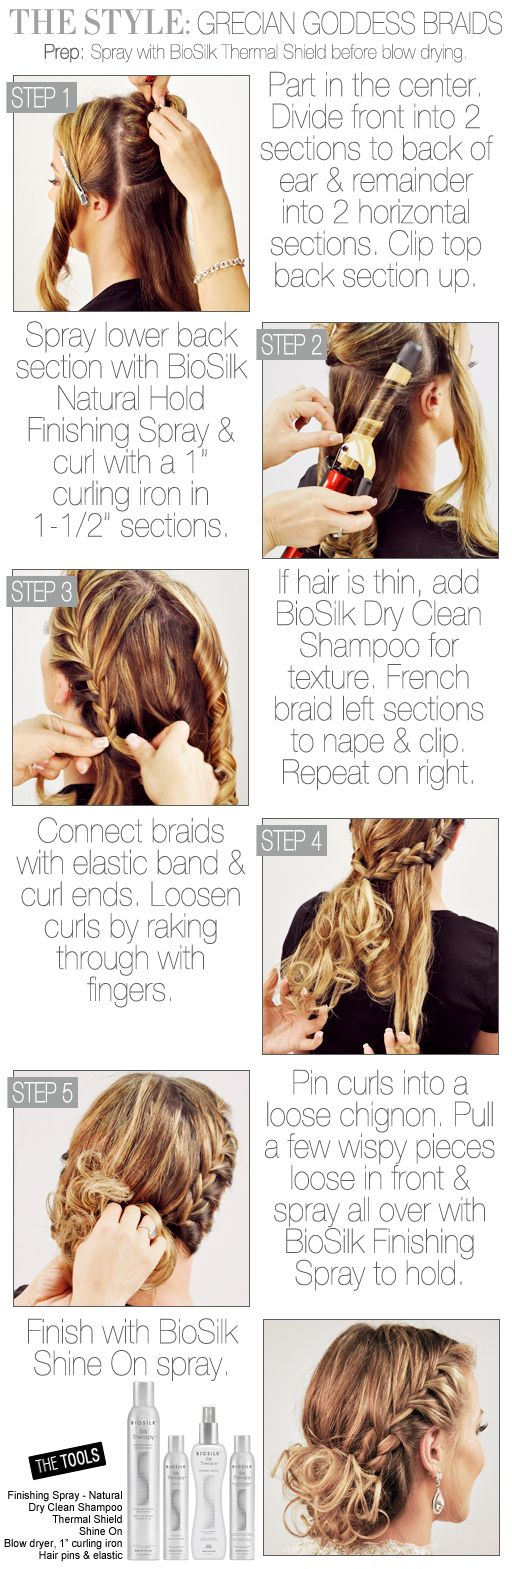 Hair How-To: Grecian Goddess Braided Updo